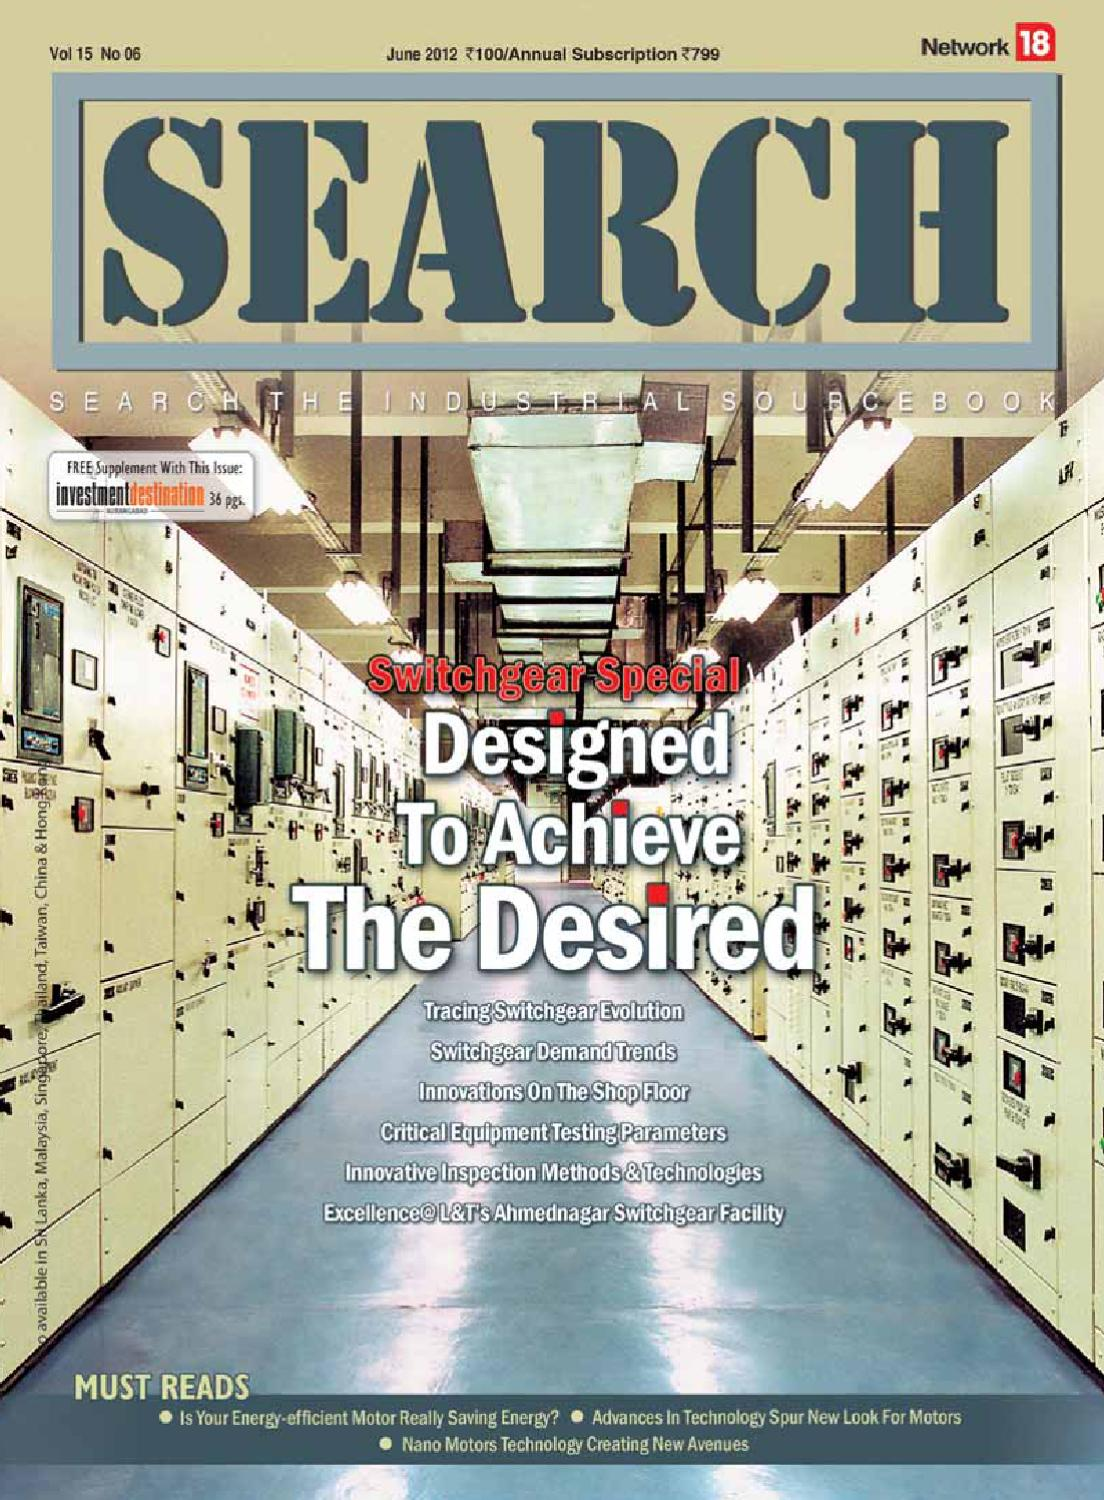 Search - June 2012 by Infomedia18 - issuu